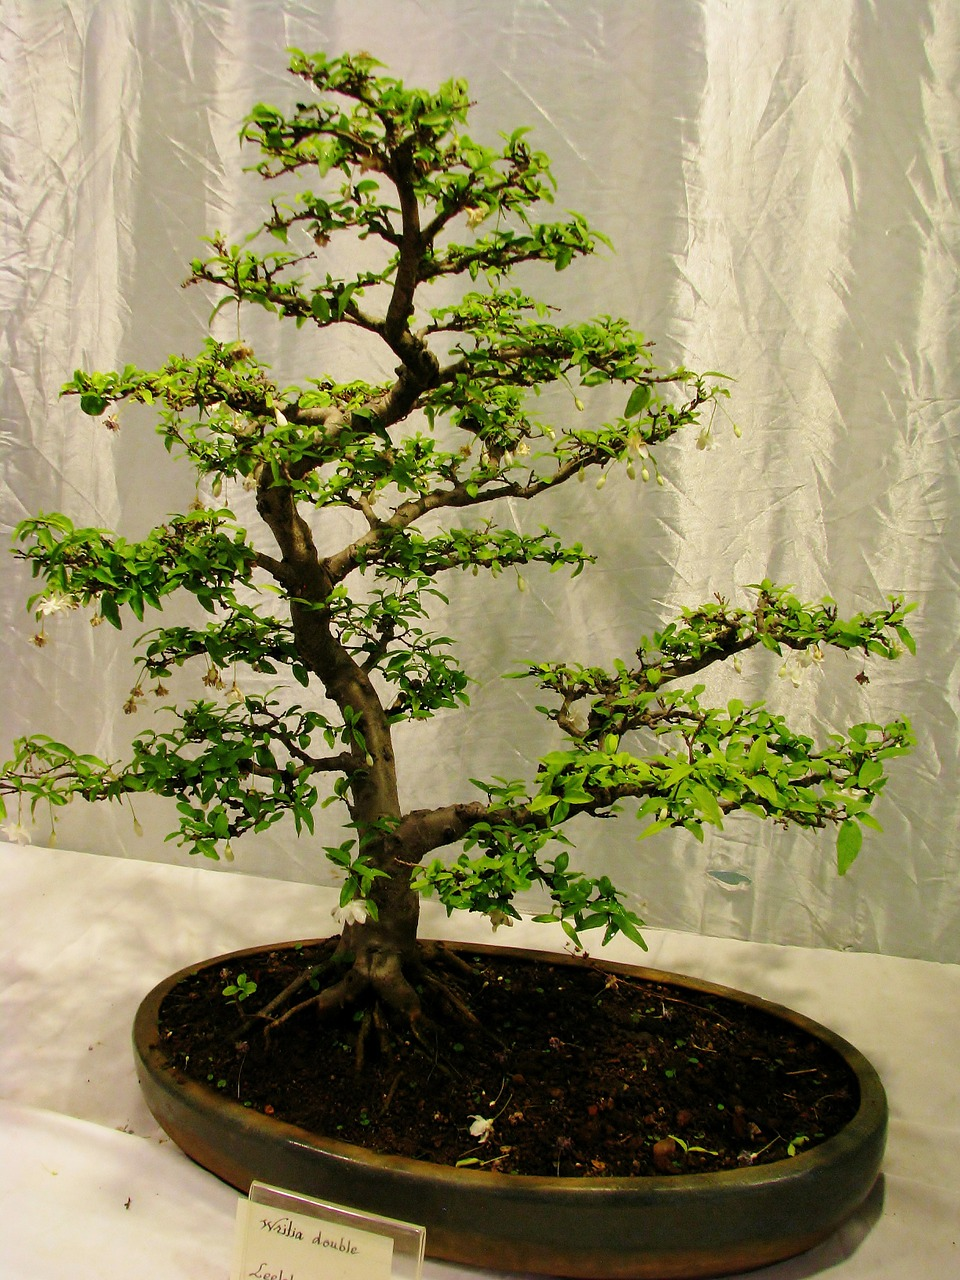 bonsai-tree-390754_1280.jpg